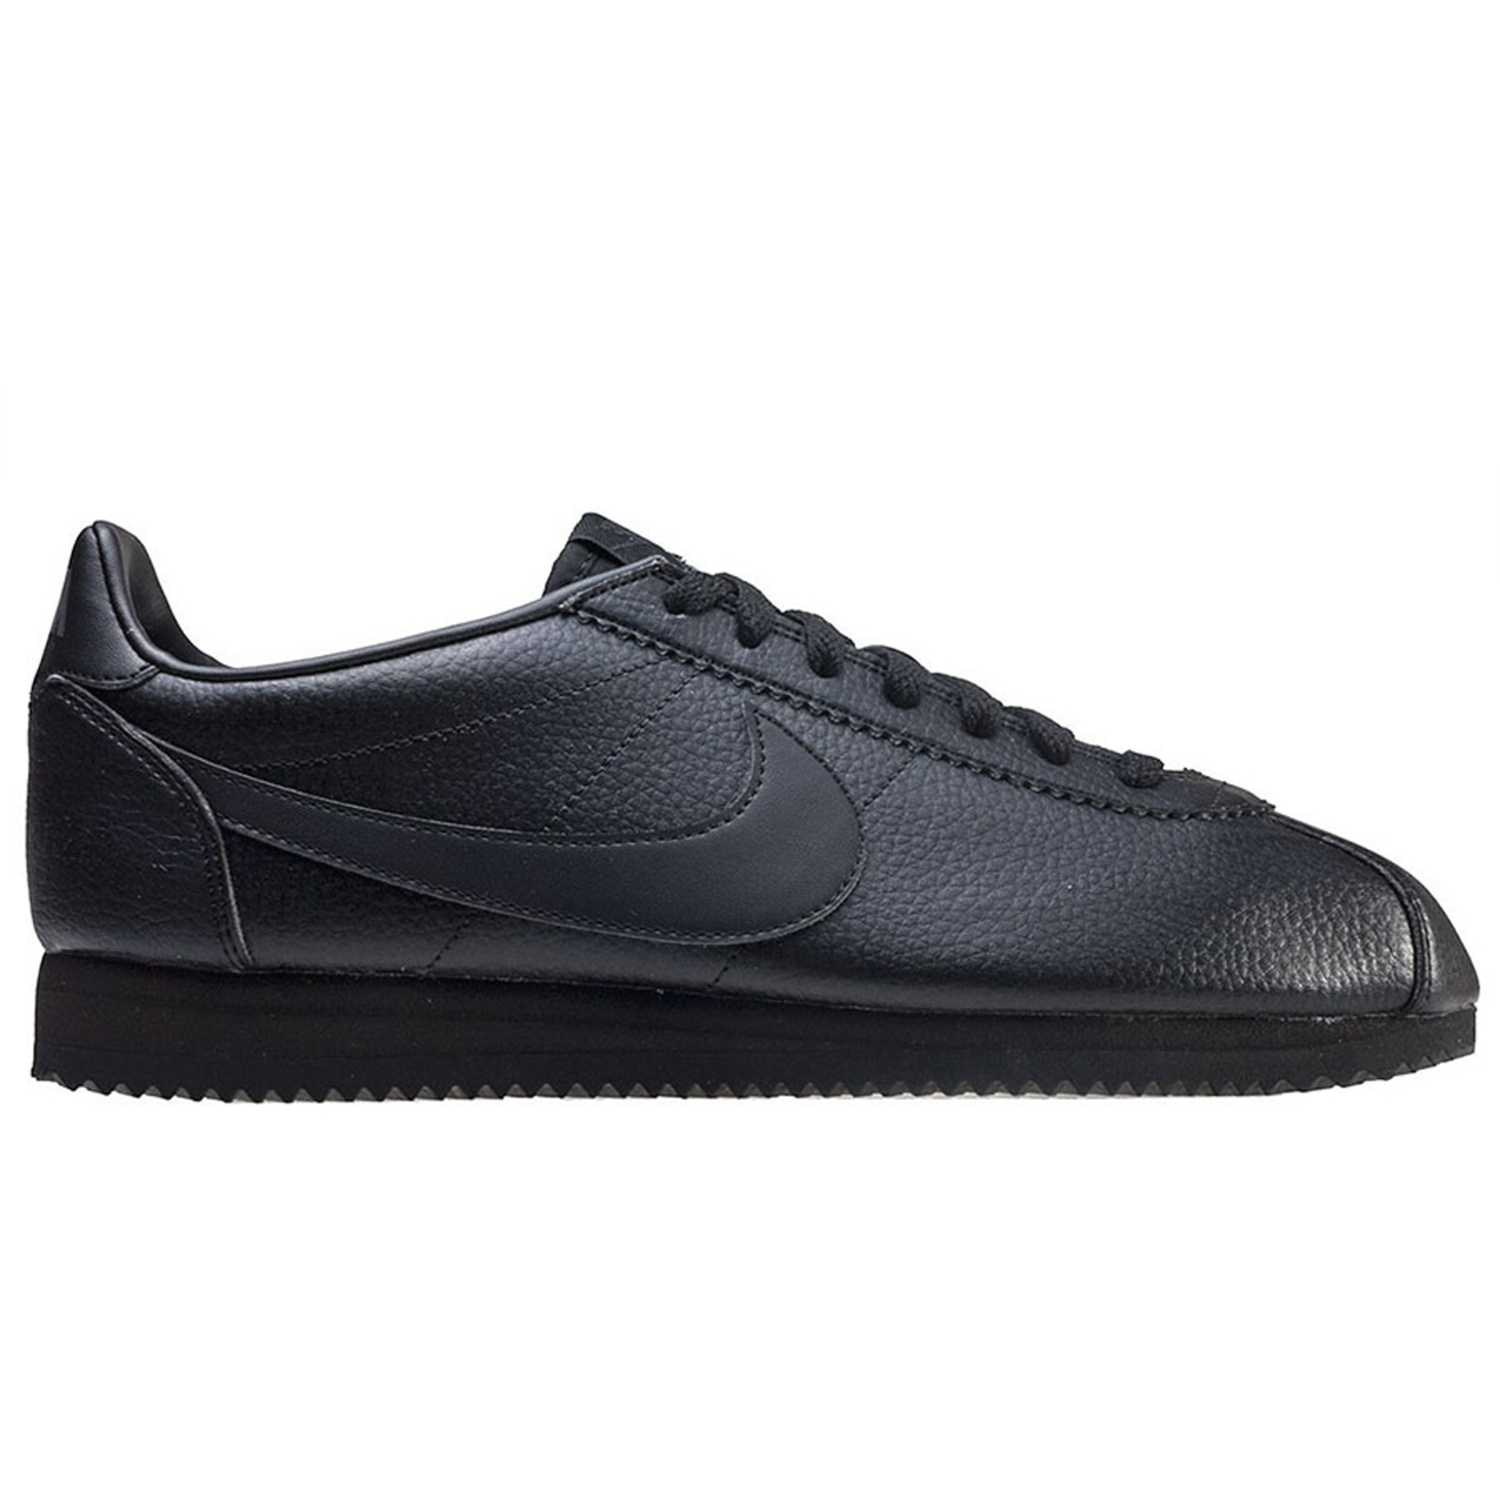 Nike classic cortez leather Negro Walking | platanitos.com